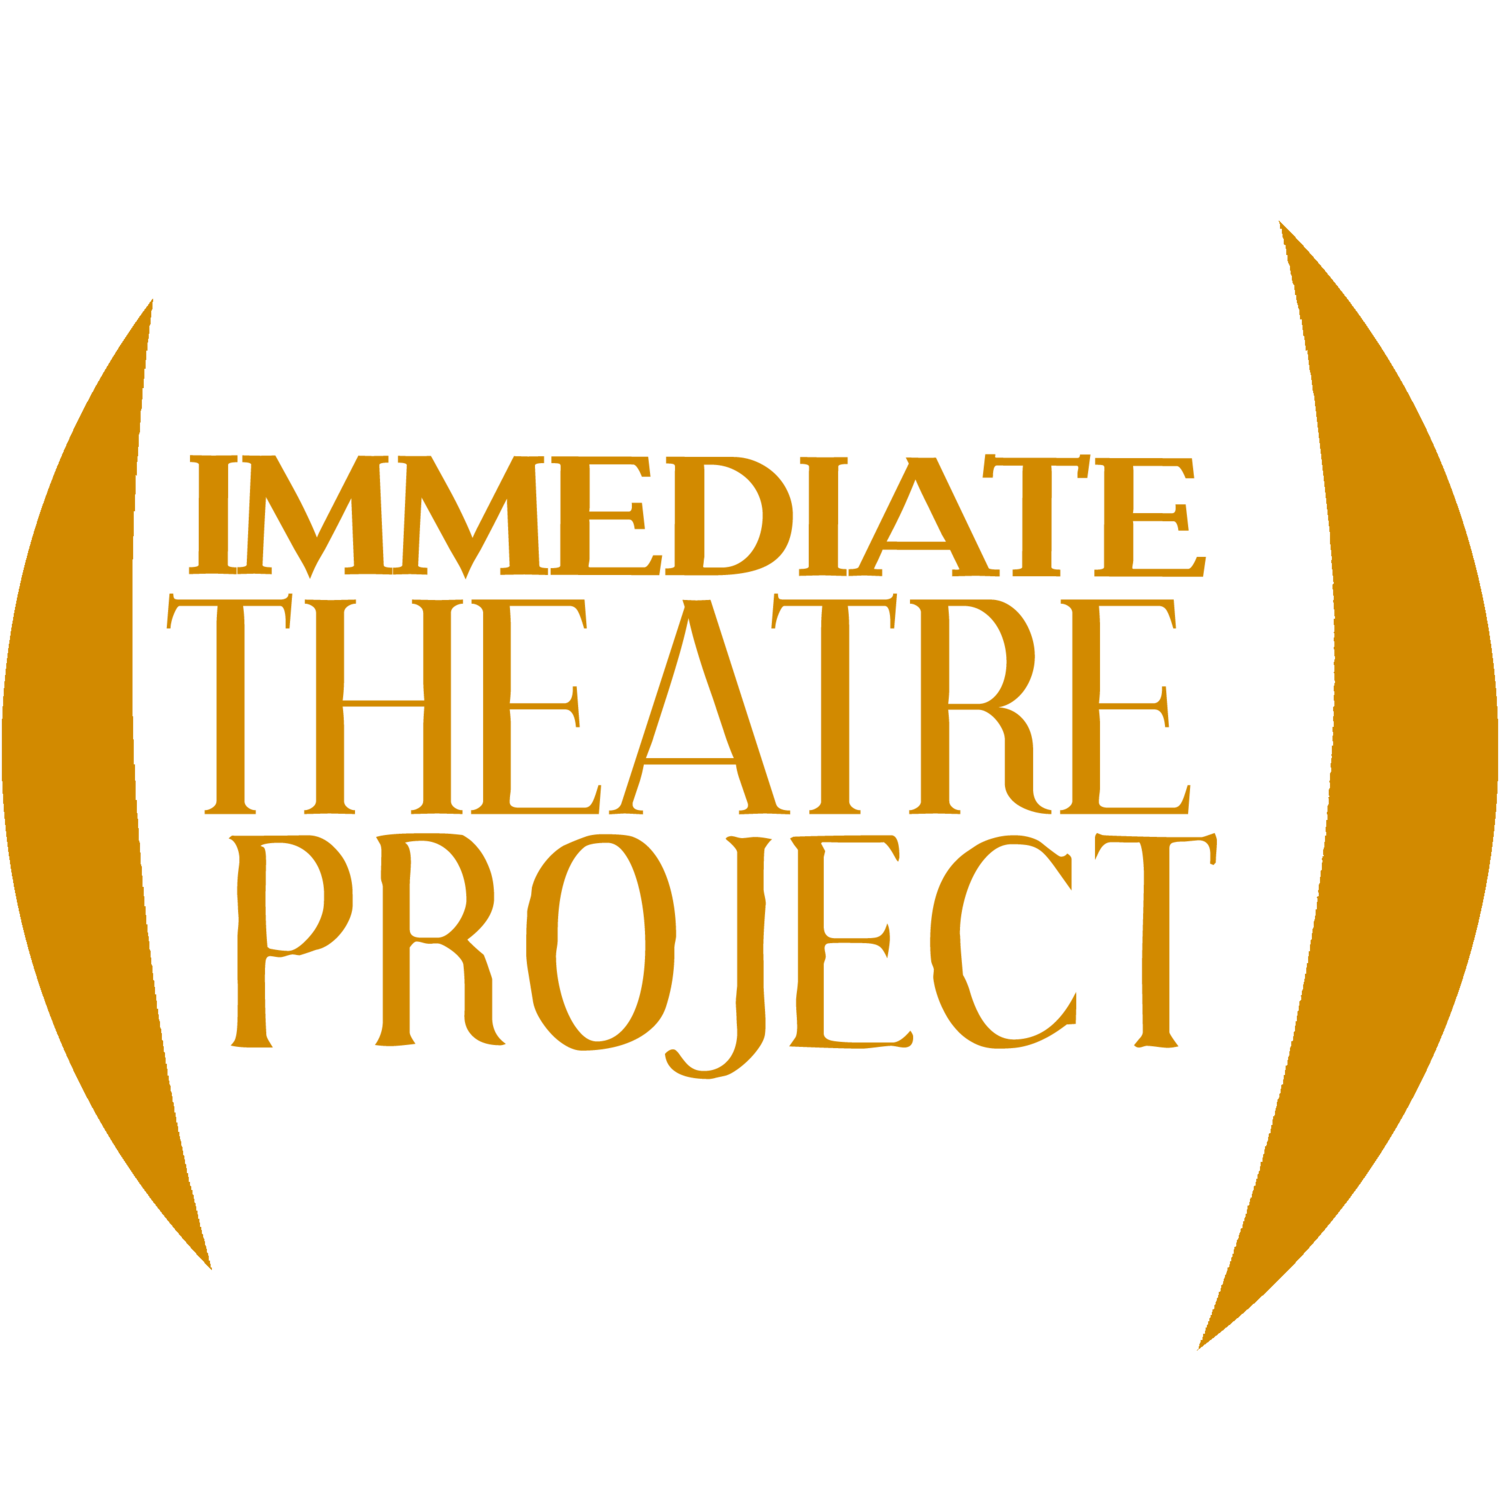 Immediate Theatre Project